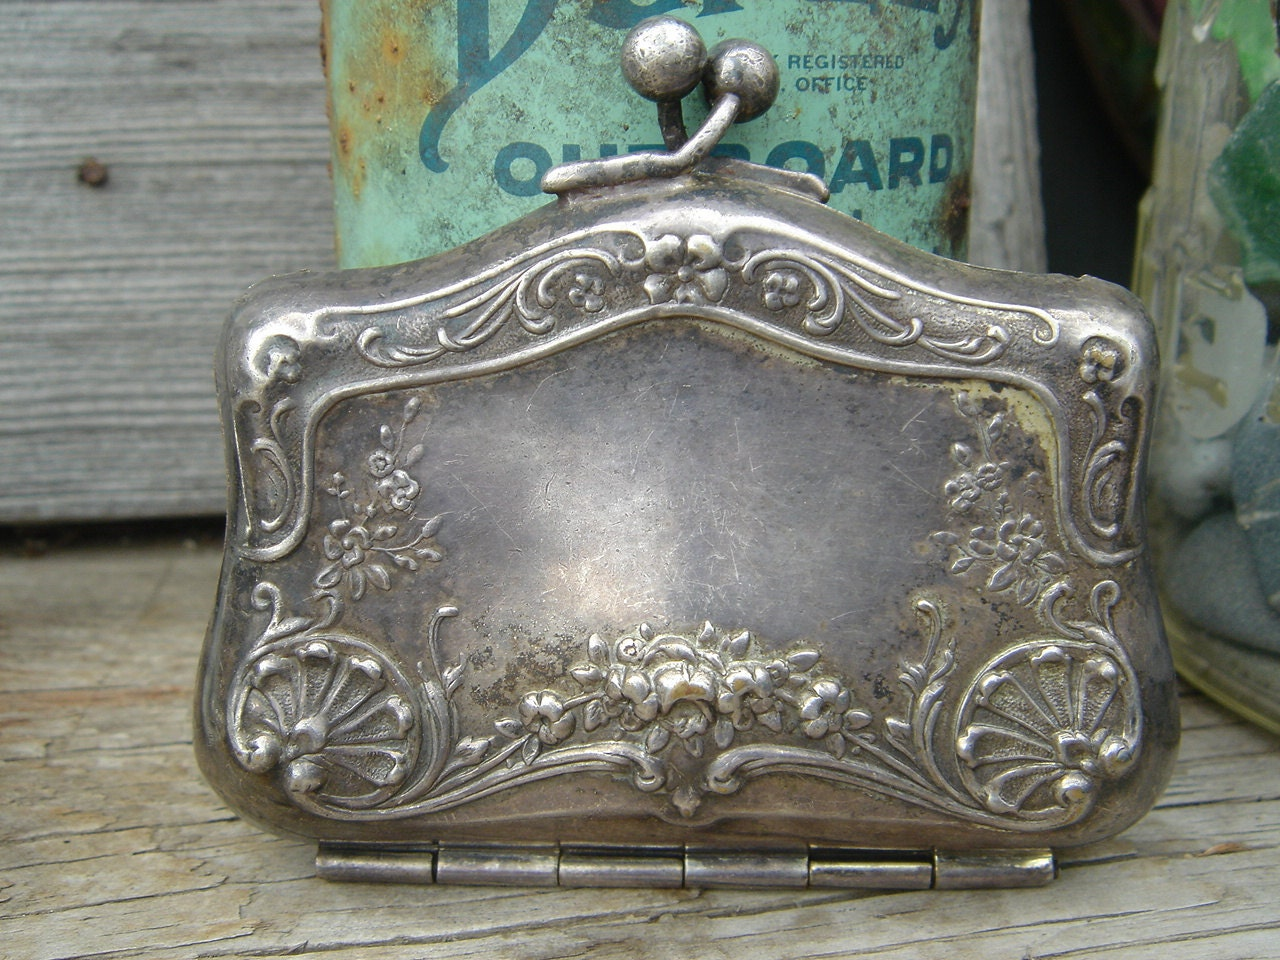 Antique Nickel Silver Repousse Coin Purse By Happymoondesigns